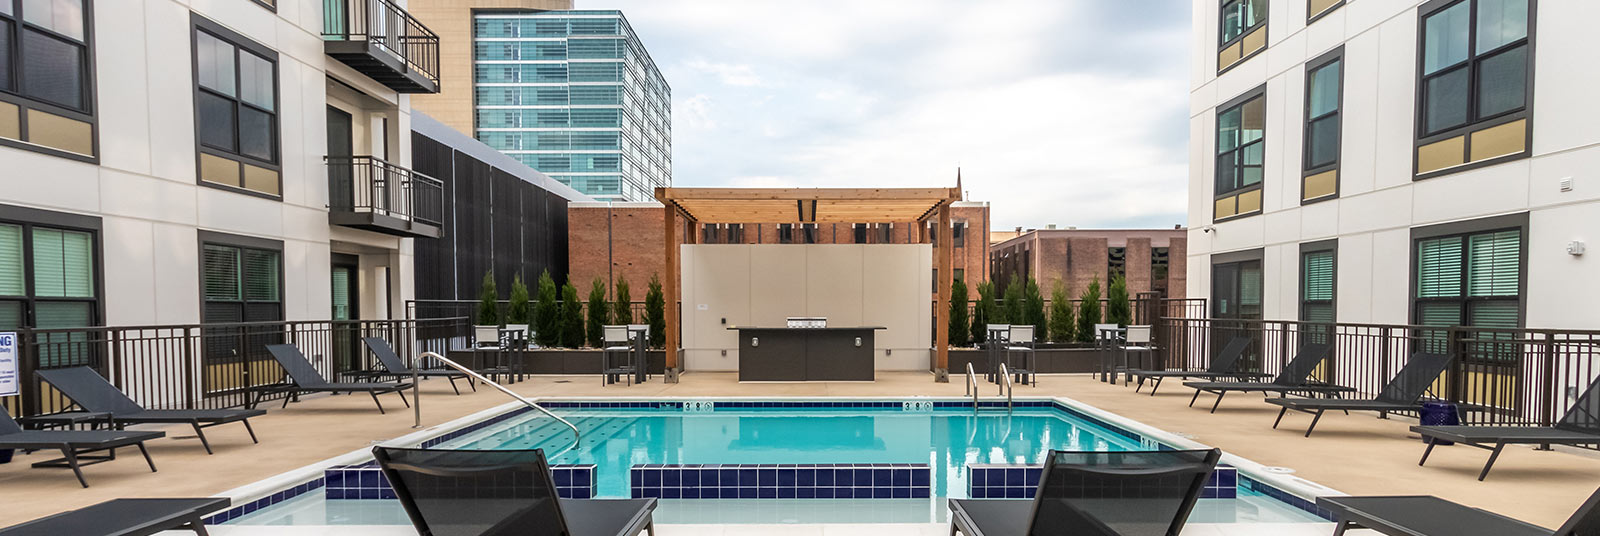 The outdoor pool at Xander on State in Columbus, Ohio.